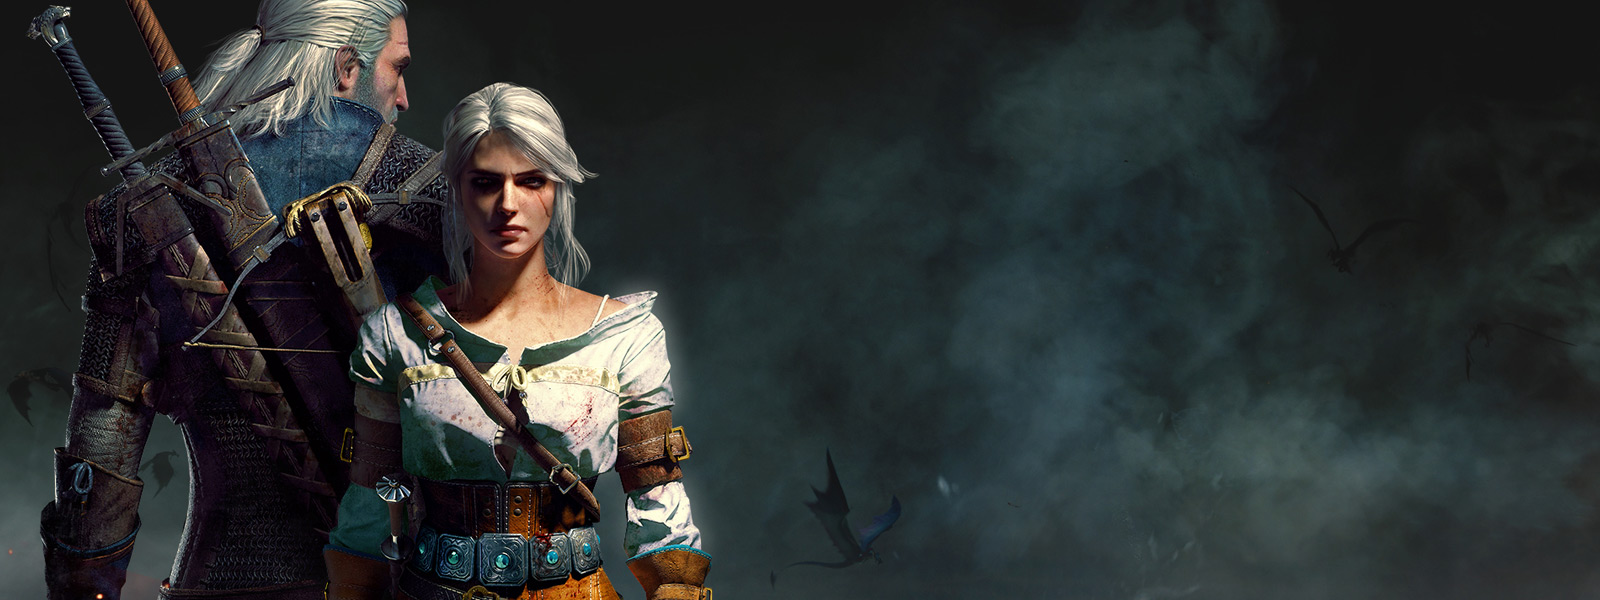 Geralt and Cirilla from the Witcher 3 standing back to back